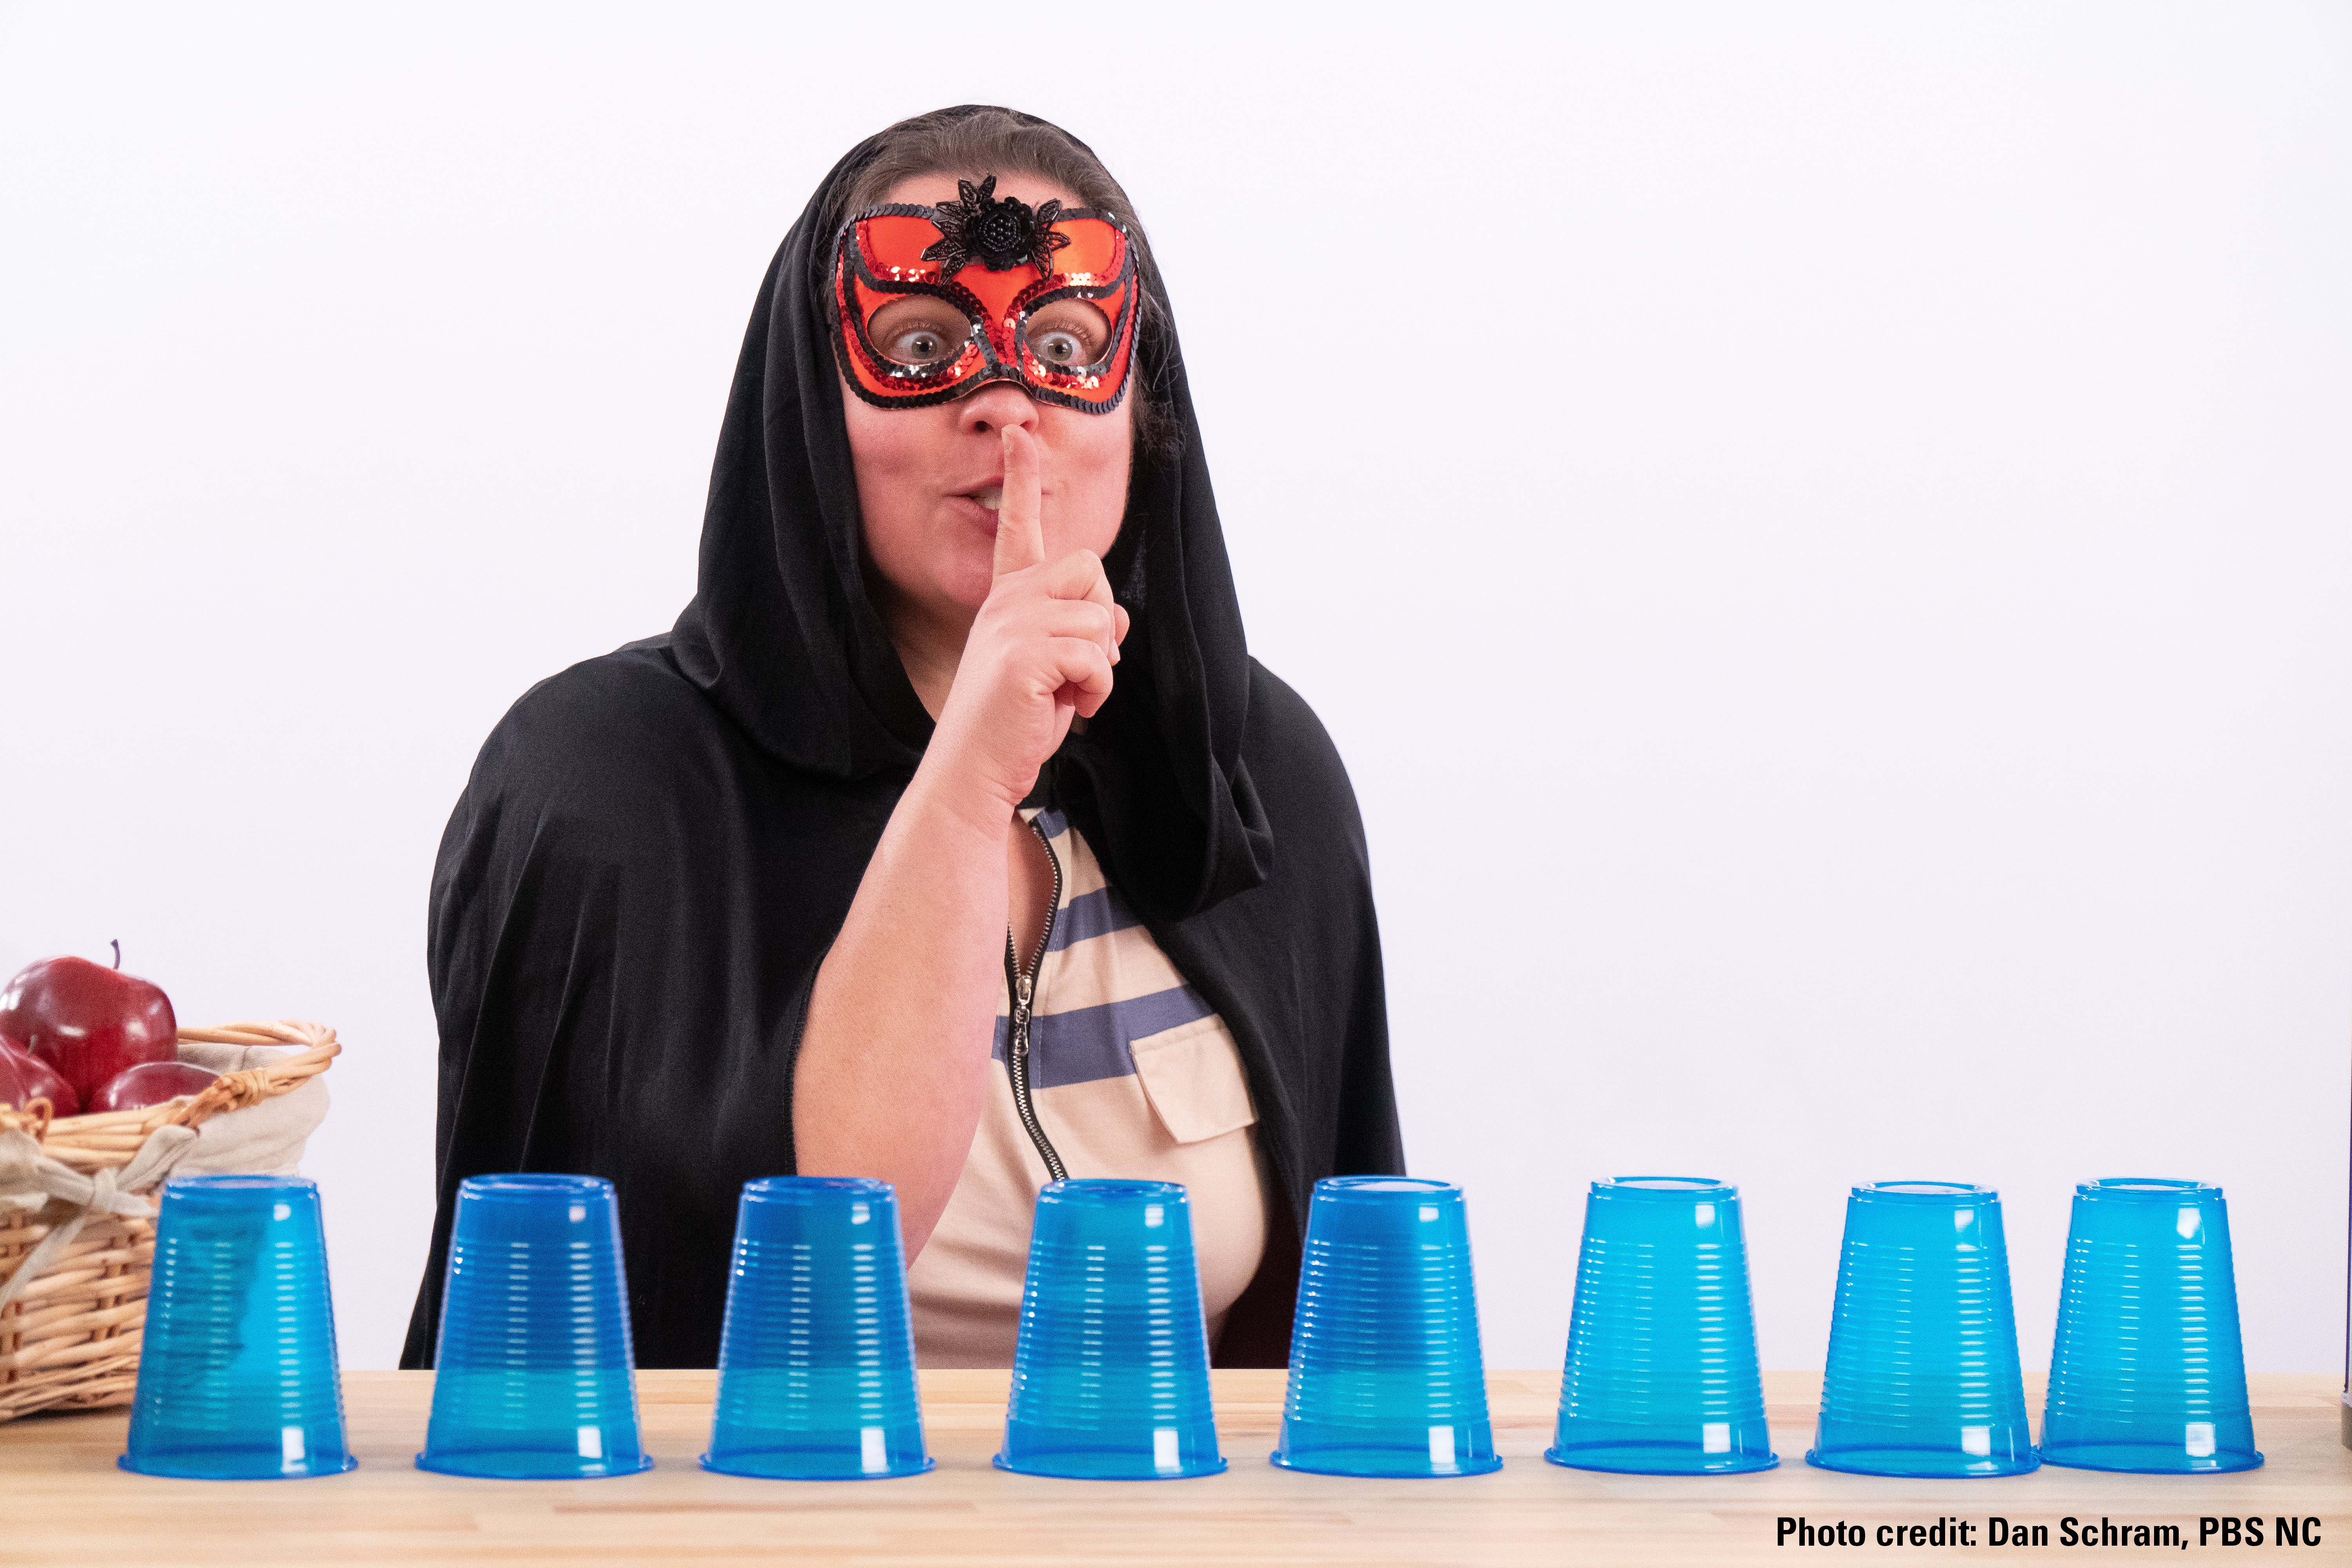 """A woman is dressed as a burglar in a mask and cape. She has her index finger over her mouth to indicate """"quiet"""" and stands in front of a table with a line of upside down plastic blue cups."""